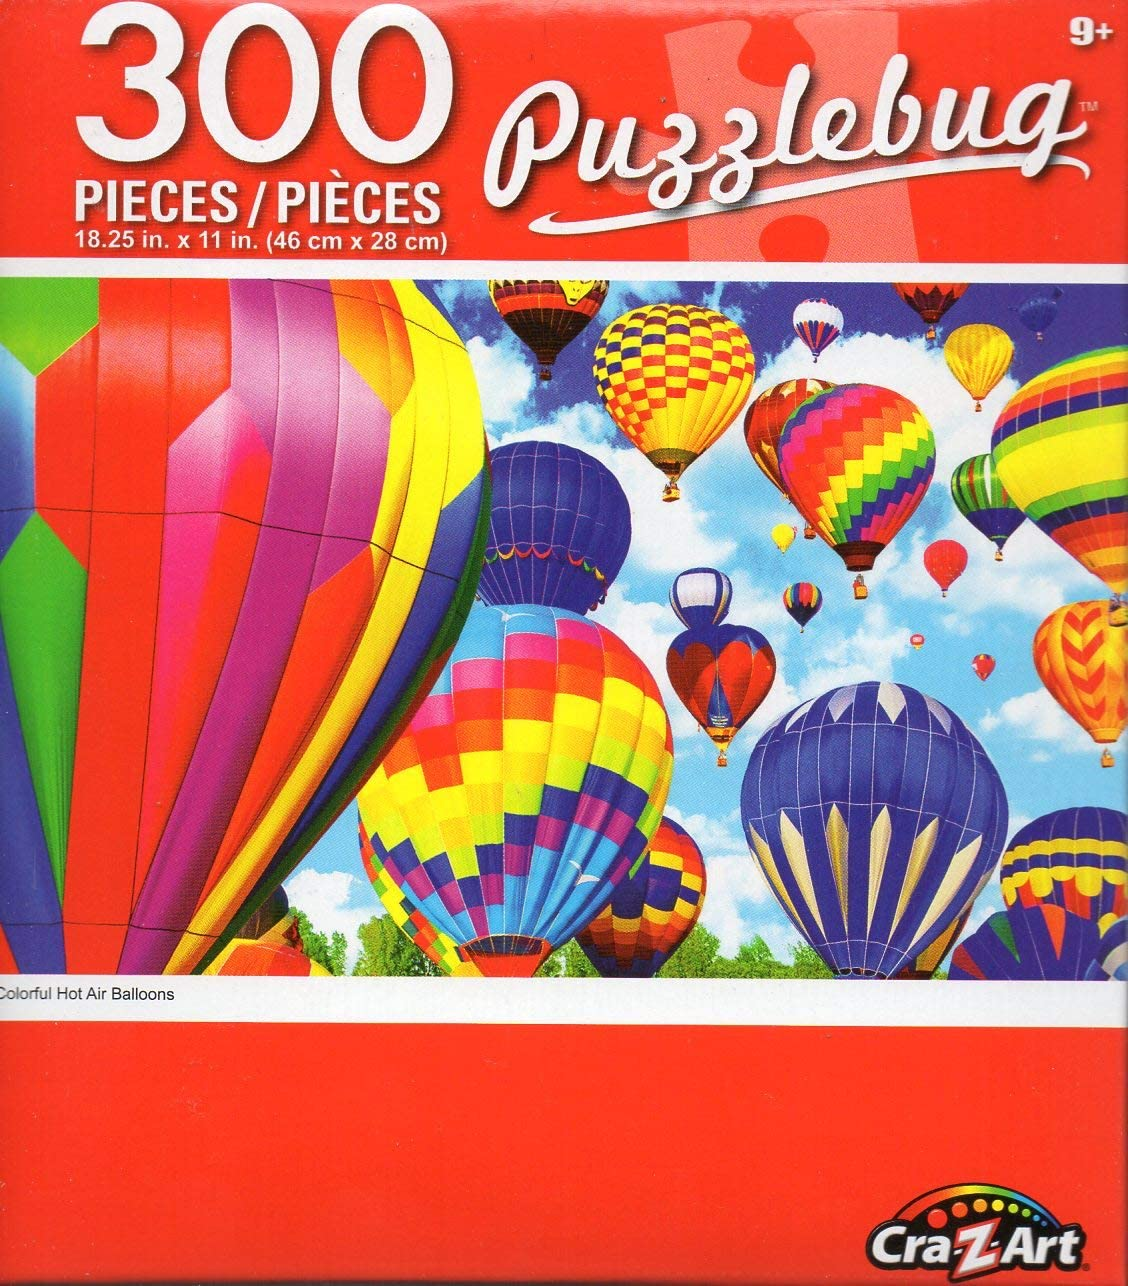 COLORFUL HOT AIR BALLOONS FLYING CRA Z ART PUZZLEBUG 300 PIECE